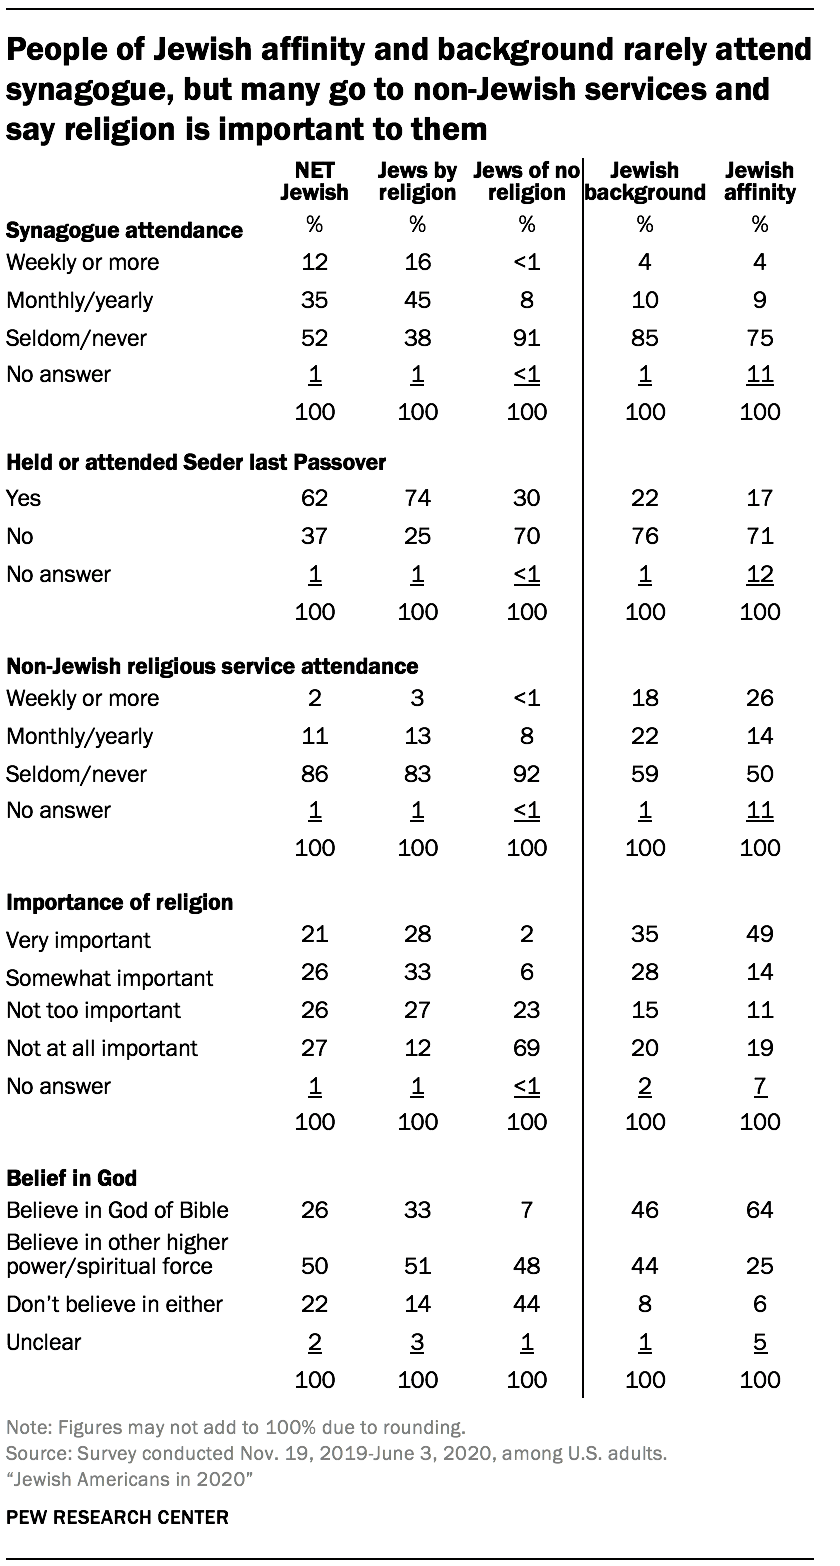 People of Jewish affinity and background rarely attend synagogue, but many go to non-Jewish services and say religion is important to them